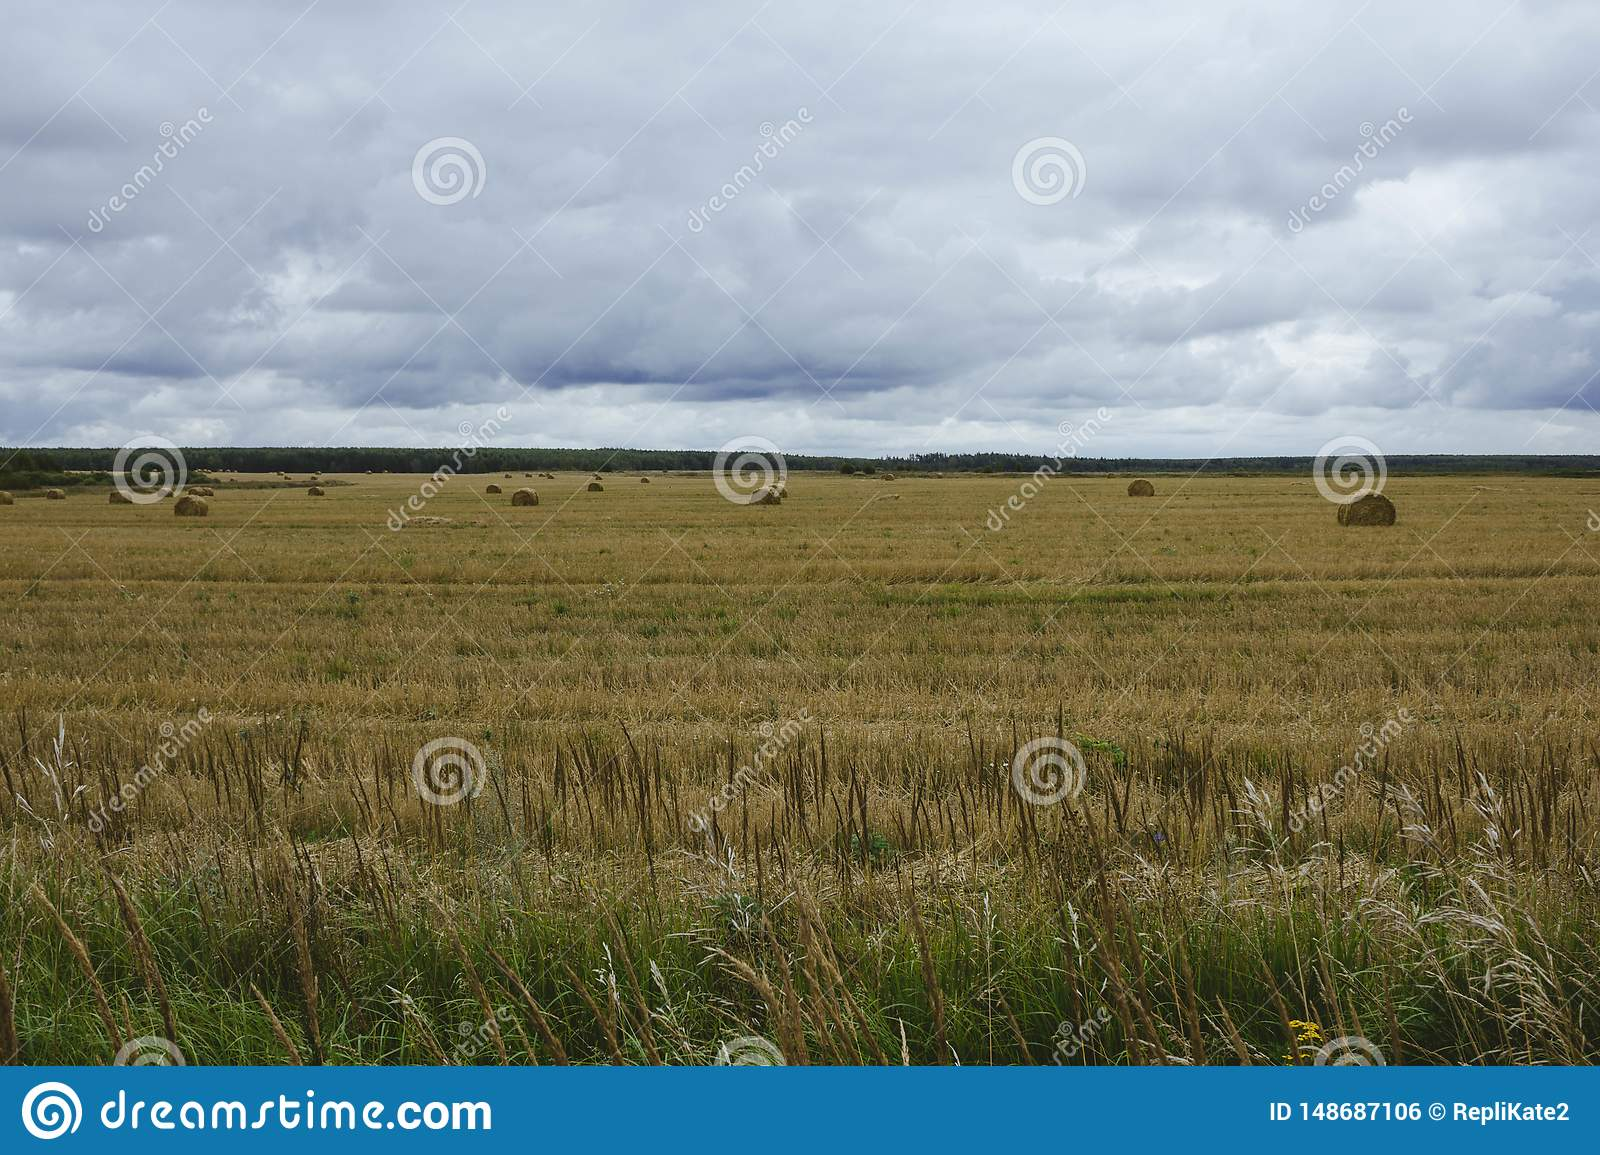 A sheaf of hay on yellow autumn field on a background cloudy sky. The harvest of hay. Autumn landscape in the field